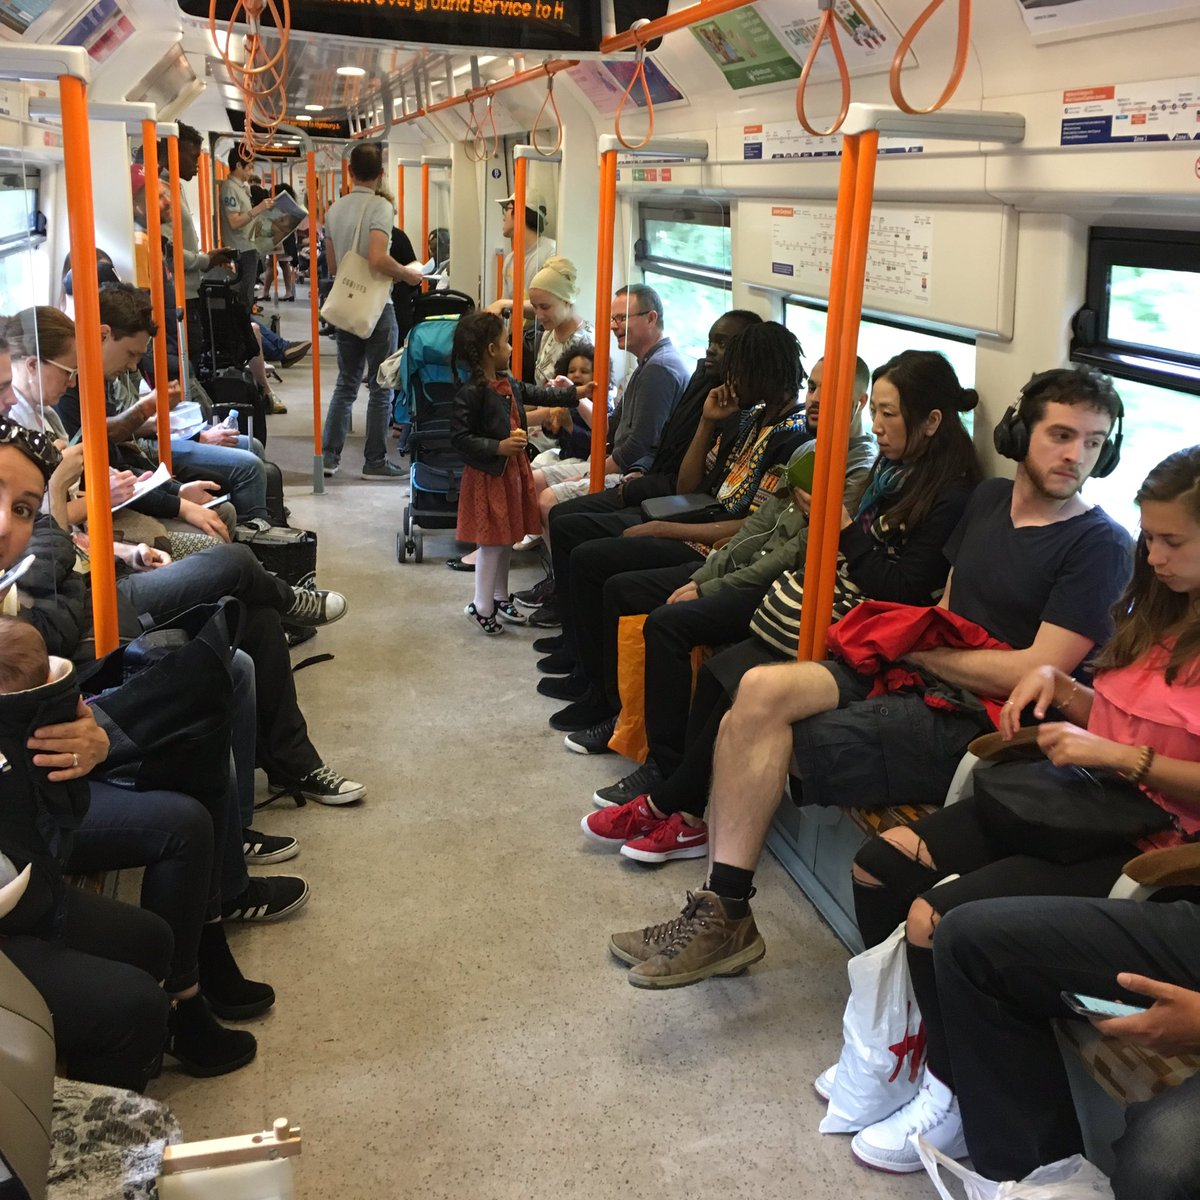 As you can see, we're all too terrified to leave our homes today. #london https://t.co/FYtrKbwU1z